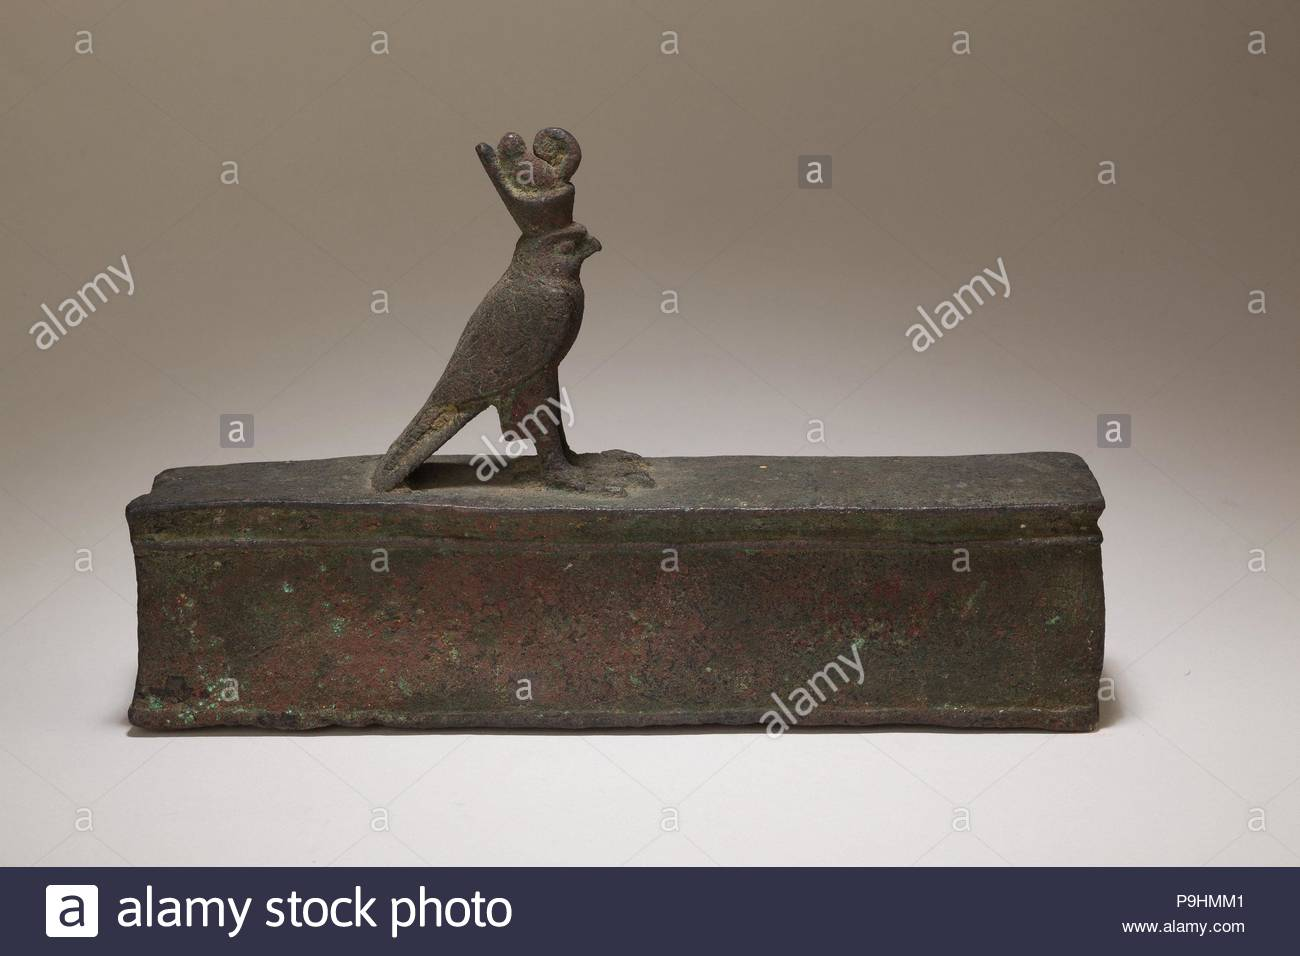 Case for an animal mummy topped by a falcon, Late Period–Ptolemaic Period, 664–30 B.C., From Egypt, Cupreous metal, H. 13.4 cm (5 1/4 in.); W. 4.9 cm (1 15/16 in.); L. 21.2 cm (8 3/8 in.), The falcon god Horus stands with his wings swept back. He has a prominent beak, large rounded eyes, and a strong brow, which supports the double crown of Egypt. This royal crown symbolizes the union of Lower and Upper Egypt, and highlights Horus' role as the legitimate ruler of the entire land. - Stock Image